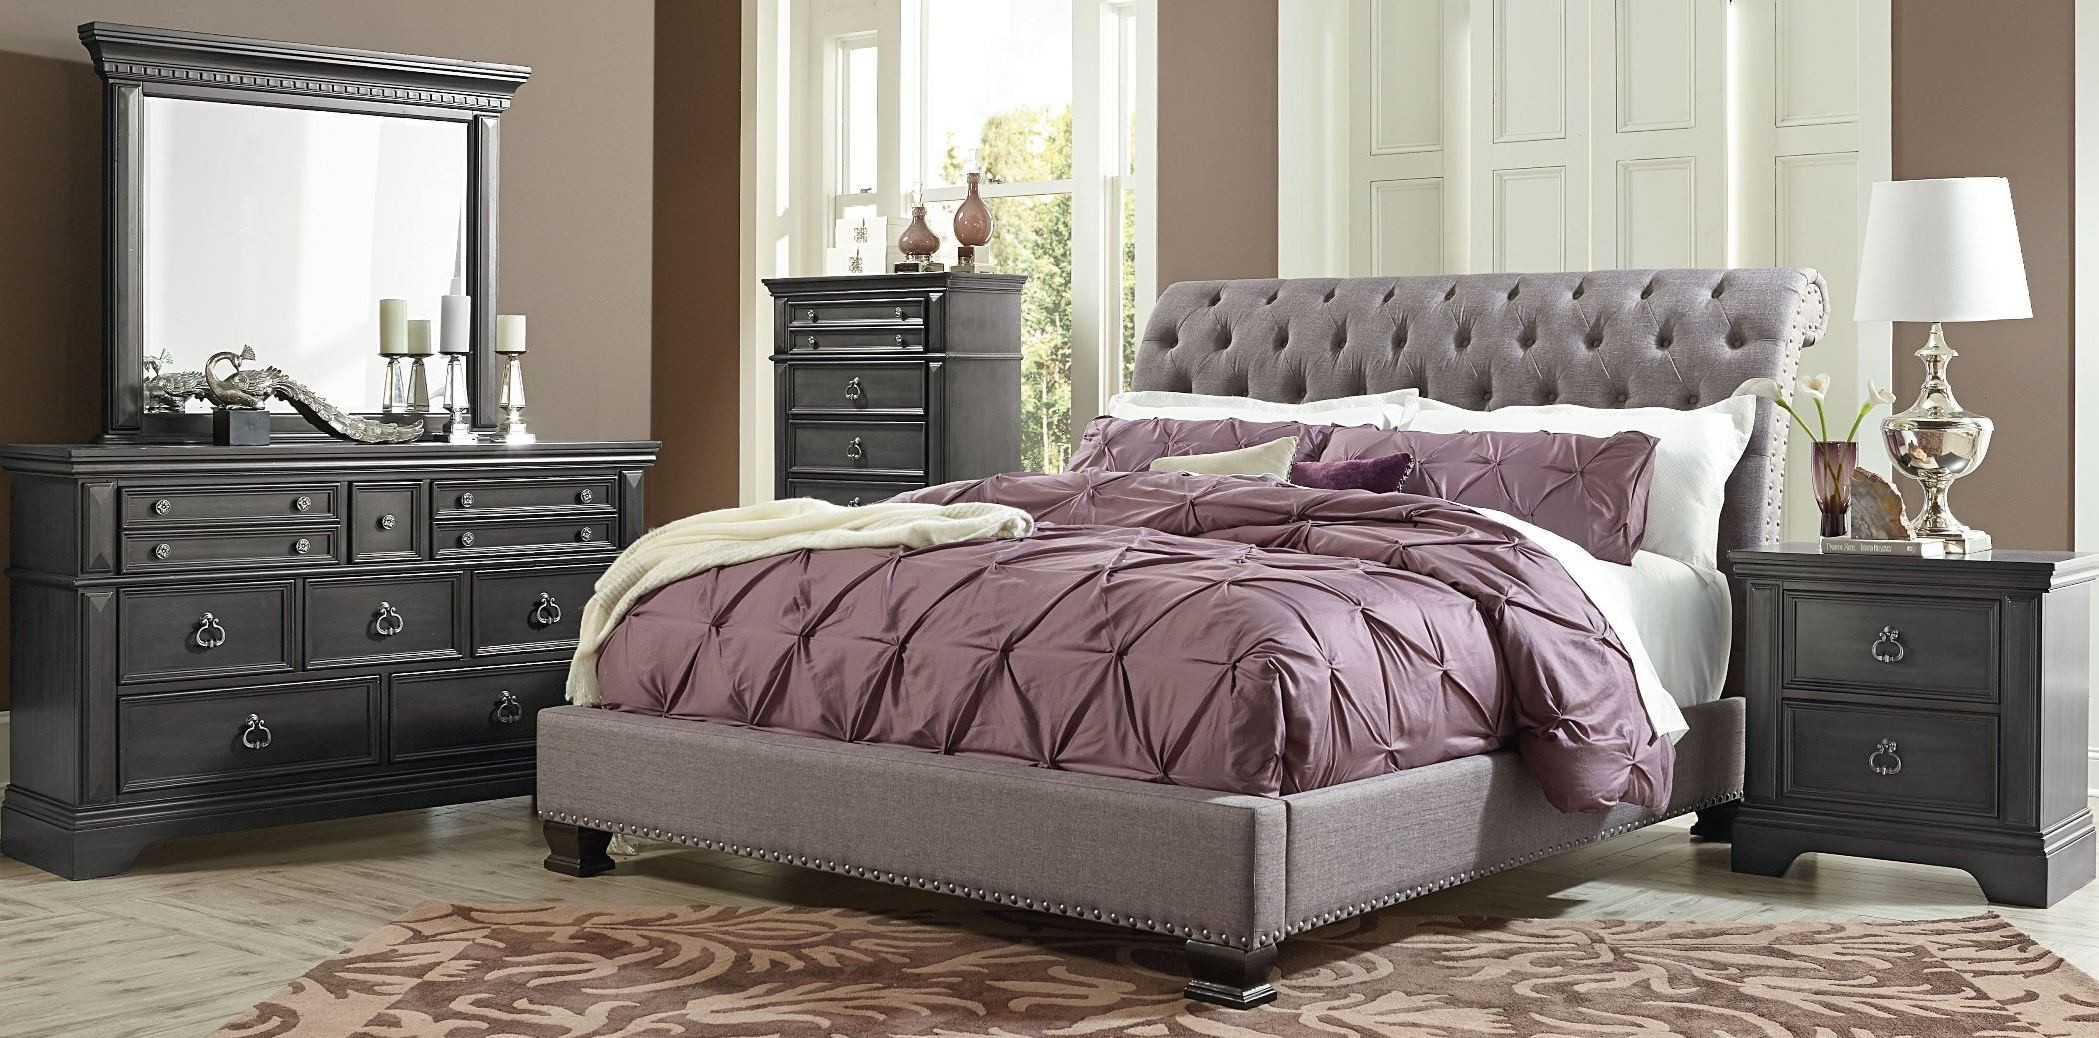 garrison soft grey upholstered bedroom set from standard furniture coleman furniture